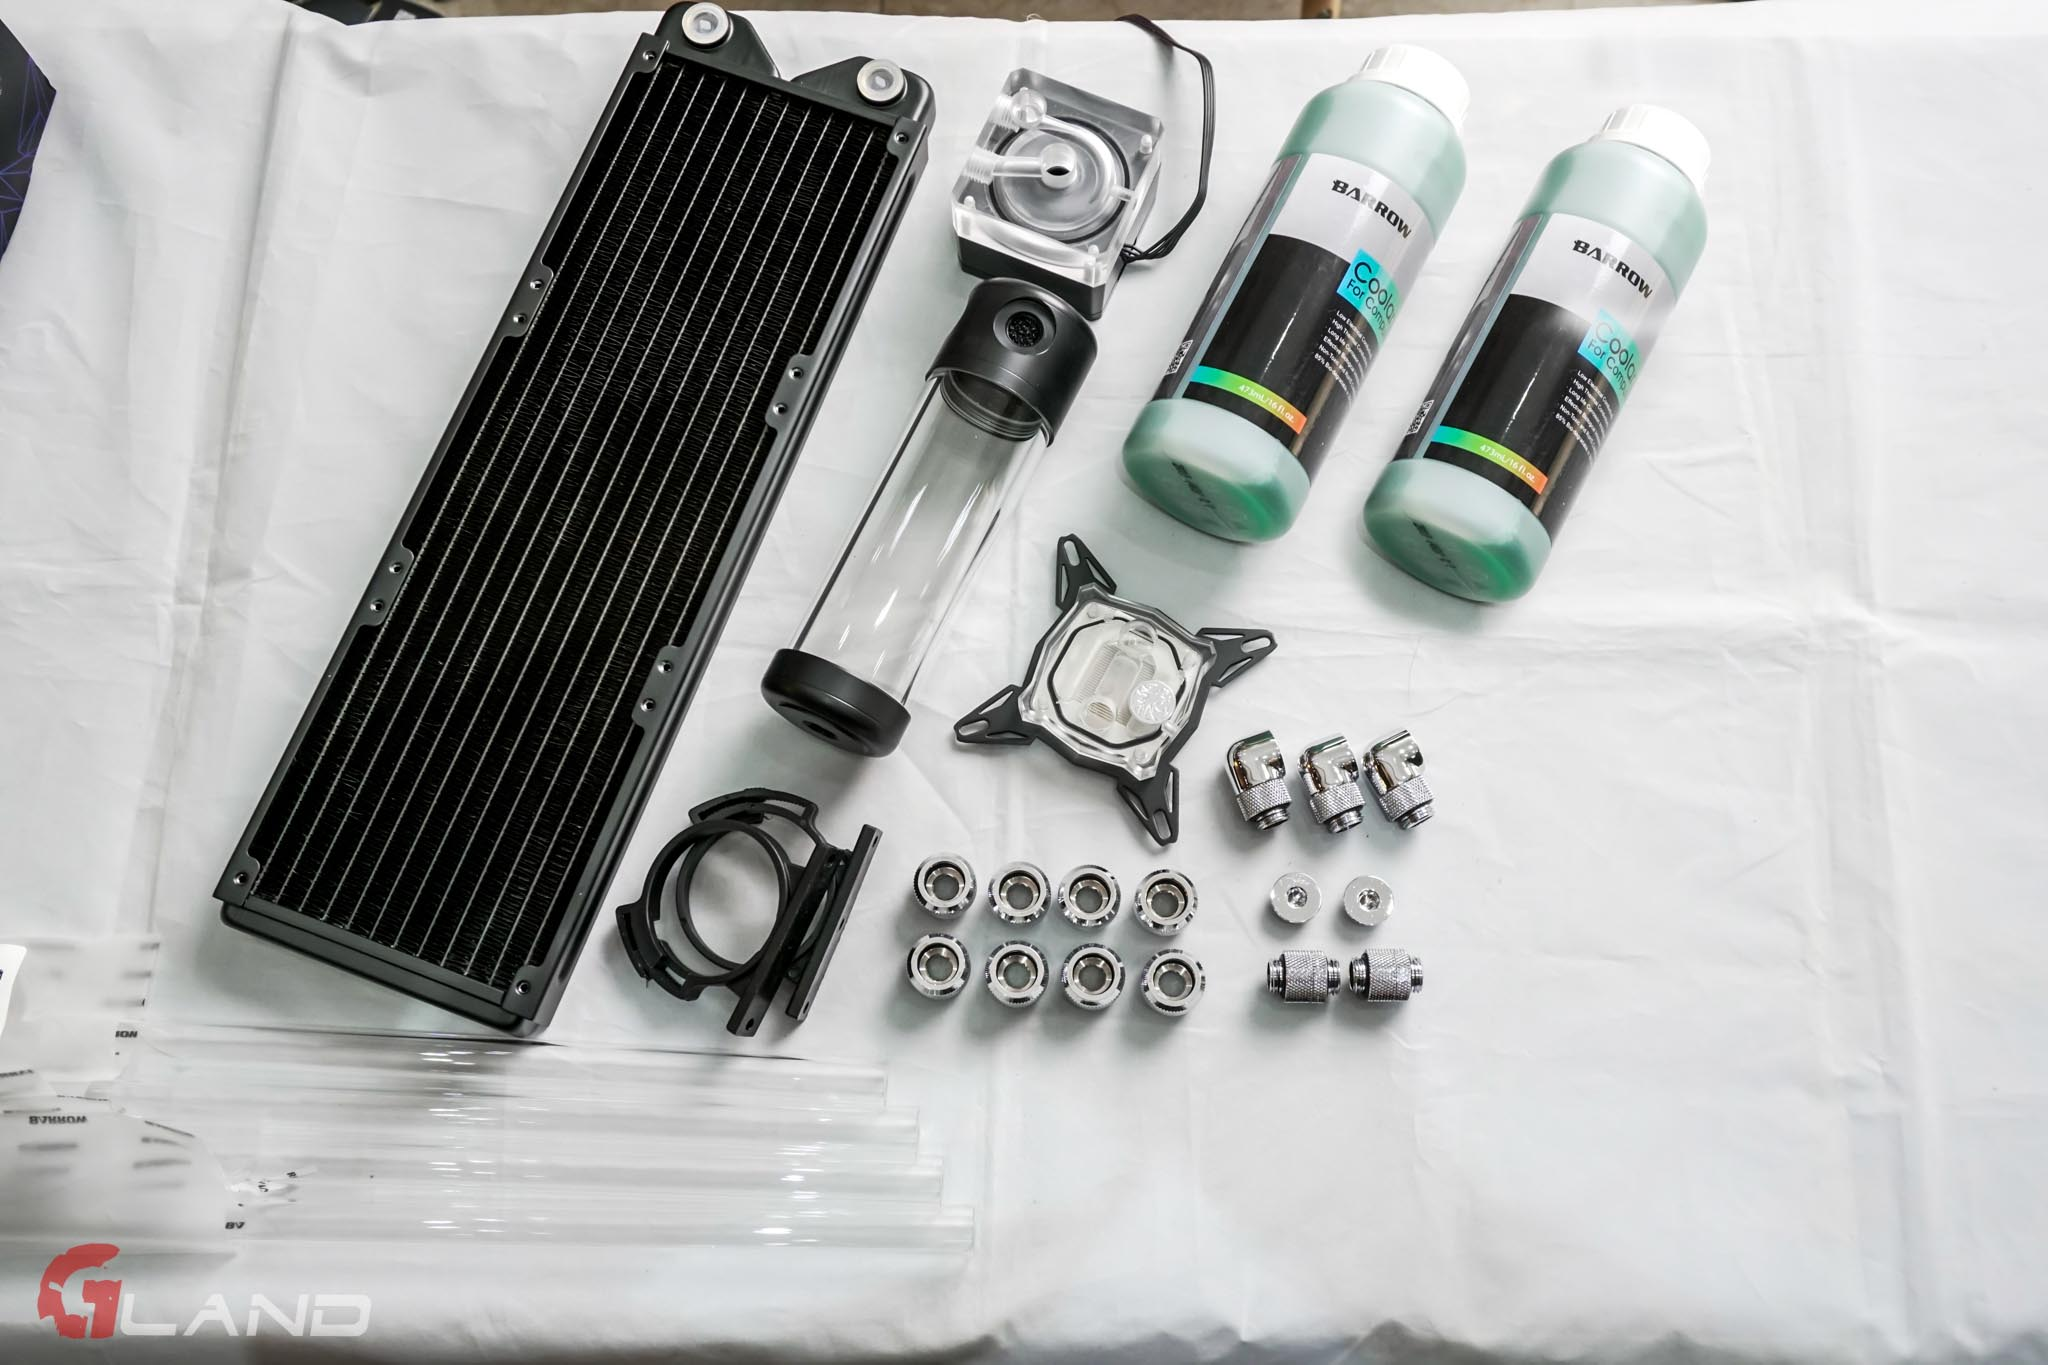 Gland Water Cooling Kit Entry 2